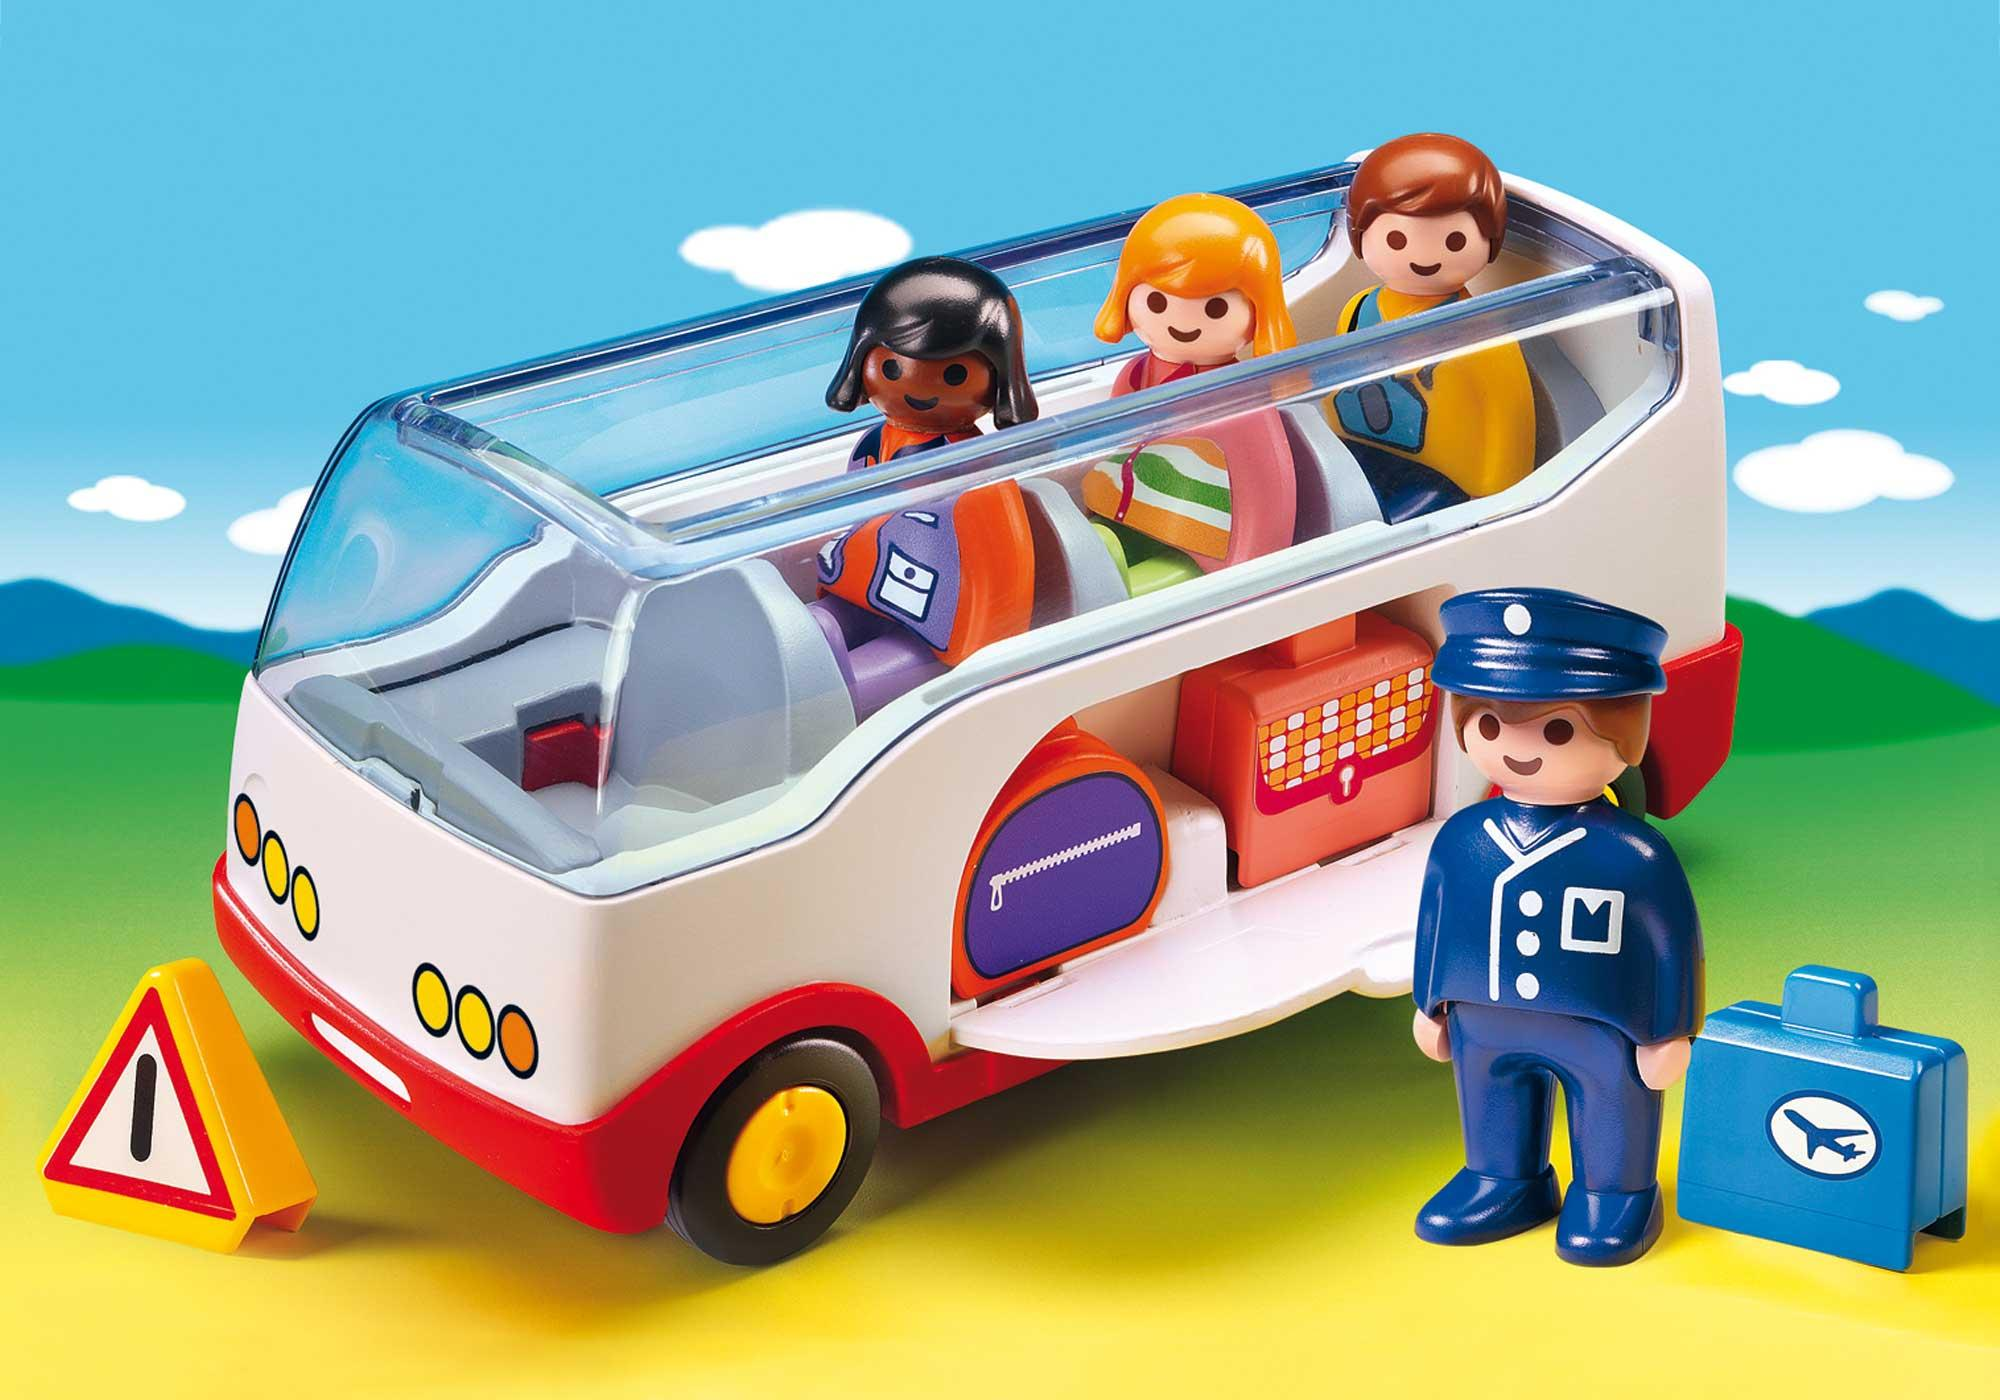 http://media.playmobil.com/i/playmobil/6773_product_detail/1.2.3 Airport Shuttle Bus